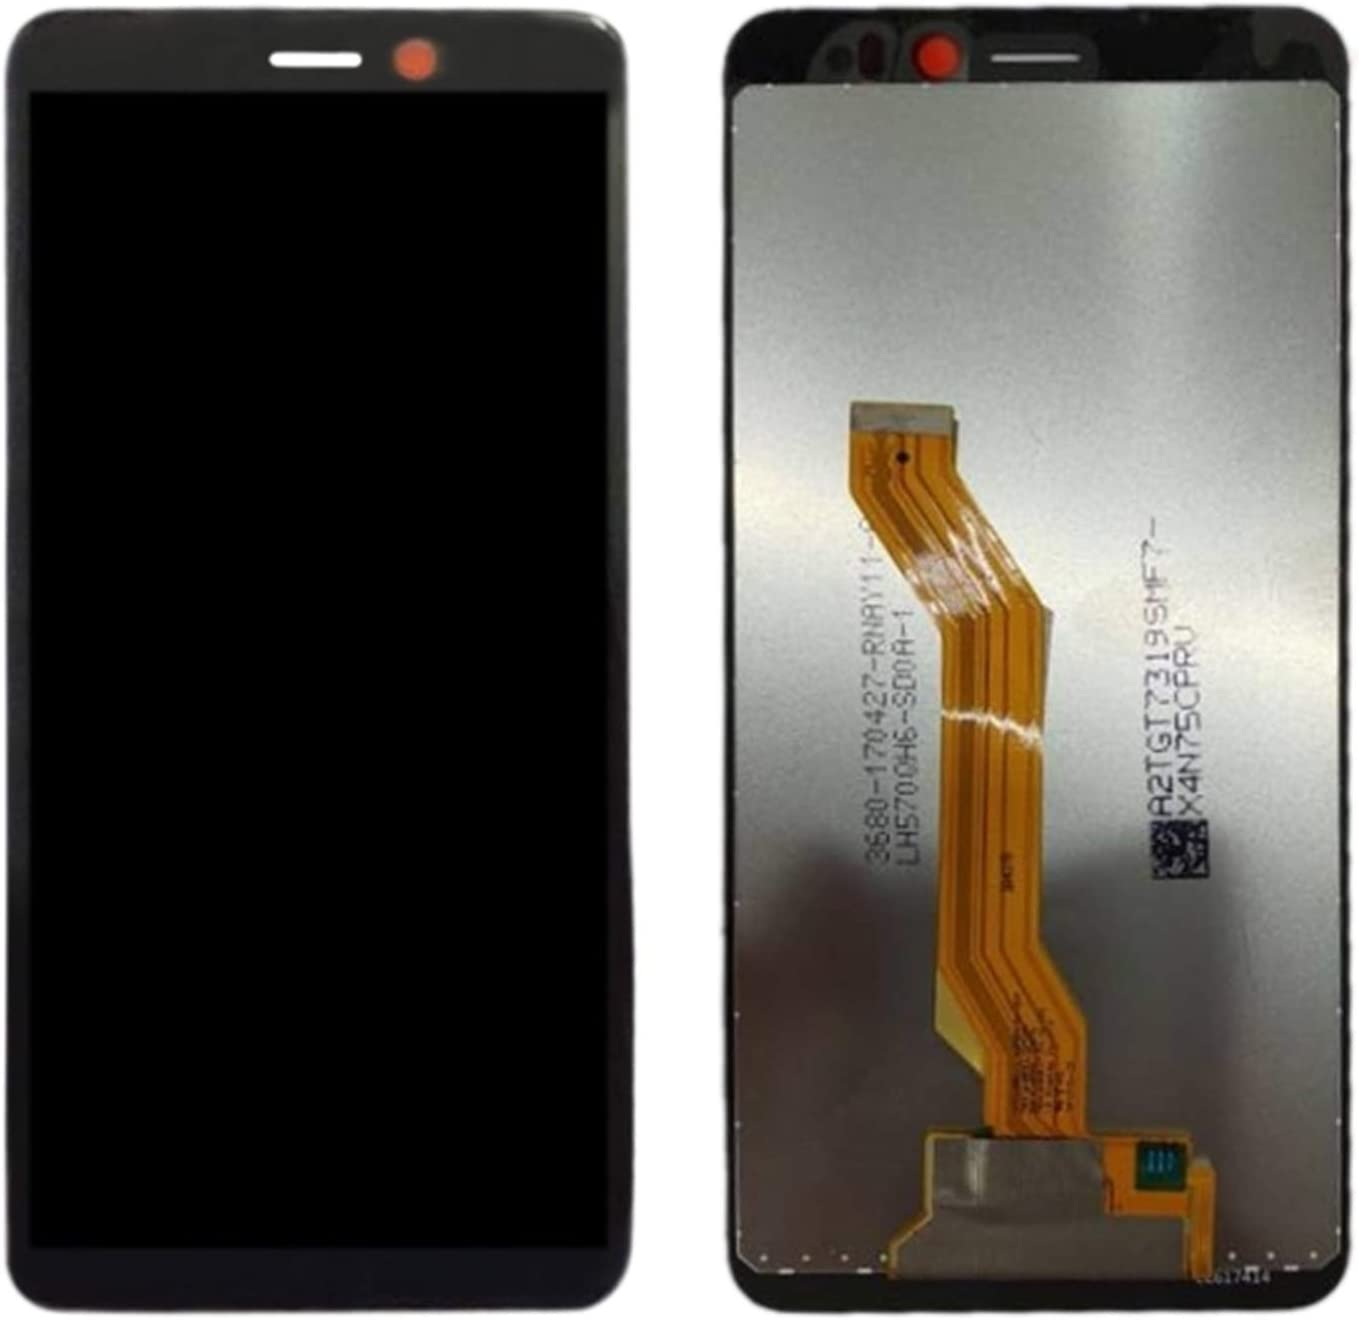 70% OFF Outlet WSDSB LCD Screen Max 60% OFF Replacement Fit HTC and for U12 Digi